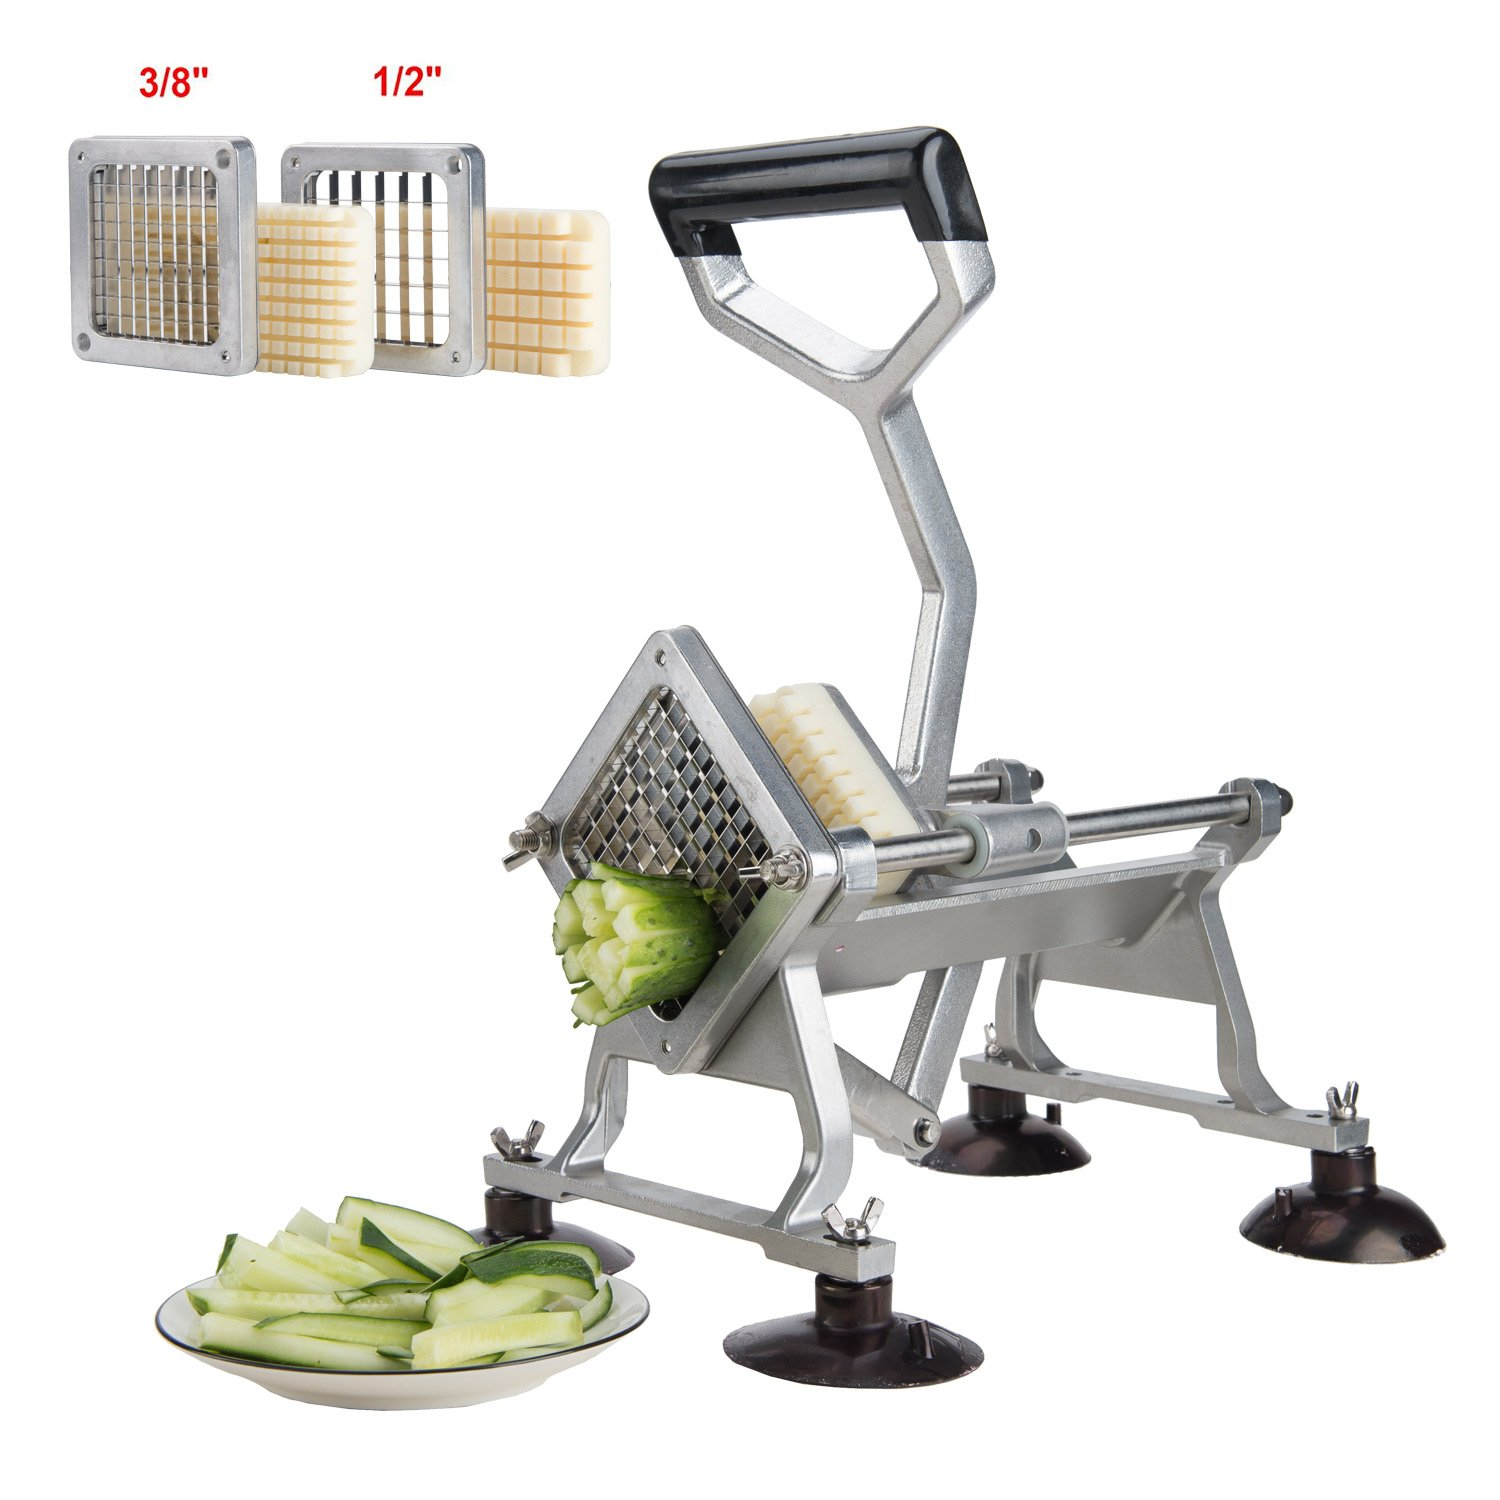 CO-Z Commercial Grade Aluminum Alloy Heavy Duty French Fry Cutter & Slicer with Suction Feet Complete Set (French Fry Cutter with 3/8 1/2 Wedge Blades)